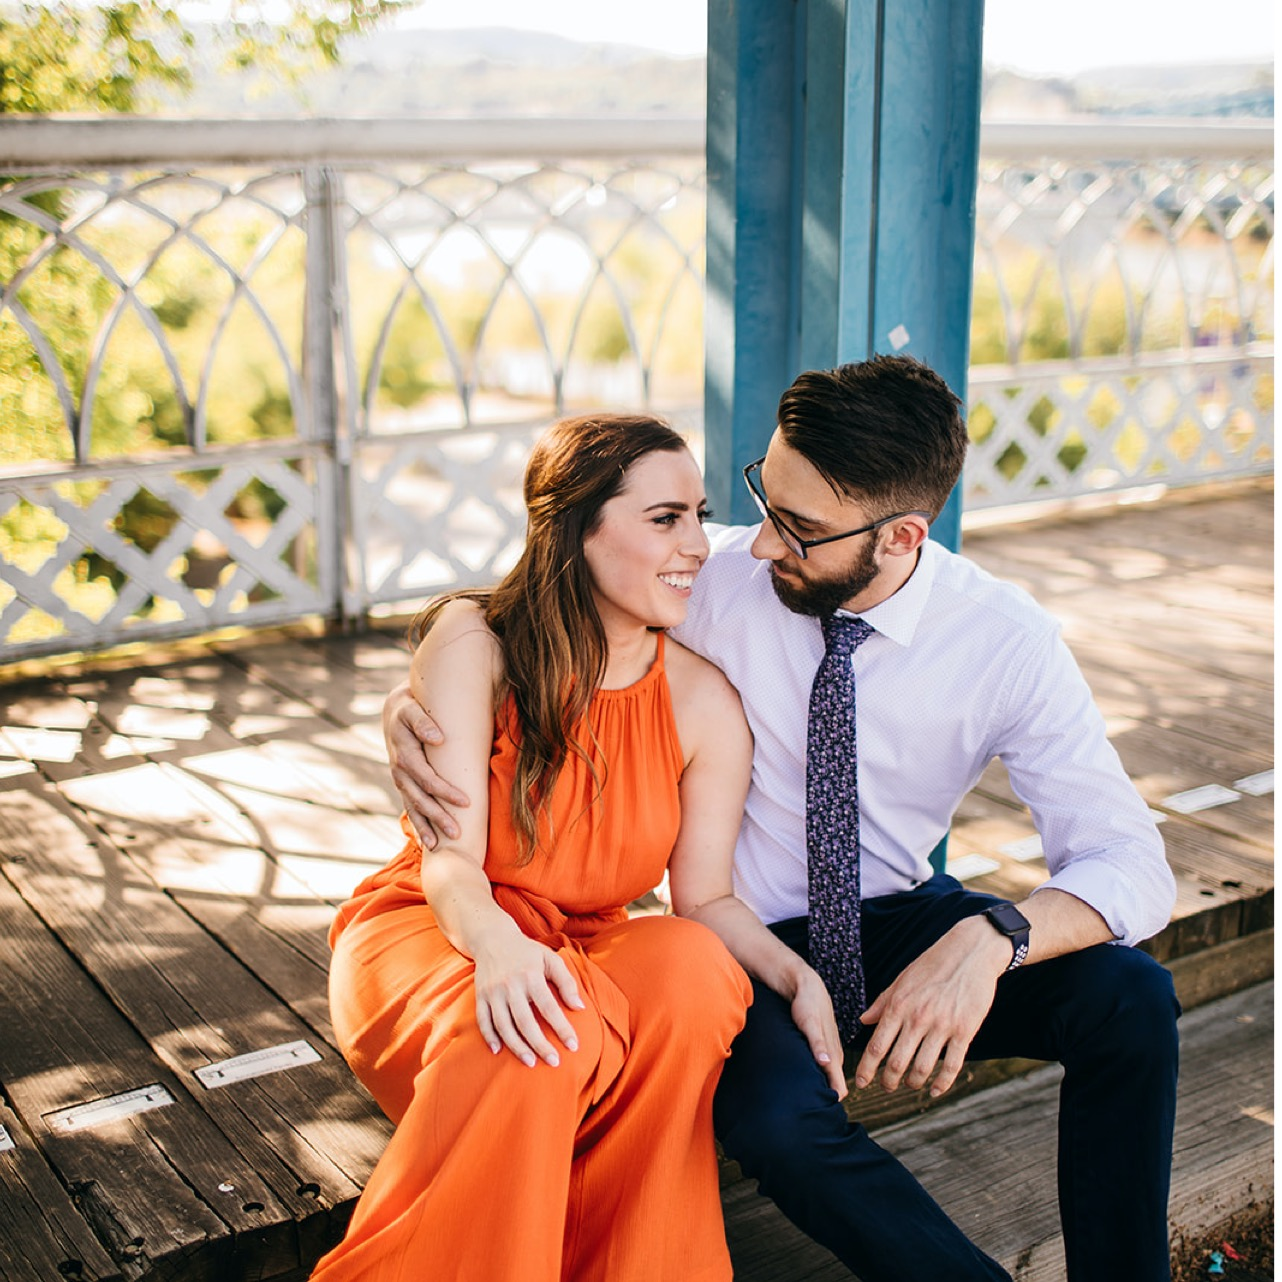 A couple sits together, embracing and looking into each other's eyes, on the Walking Bridge in Chattanooga.